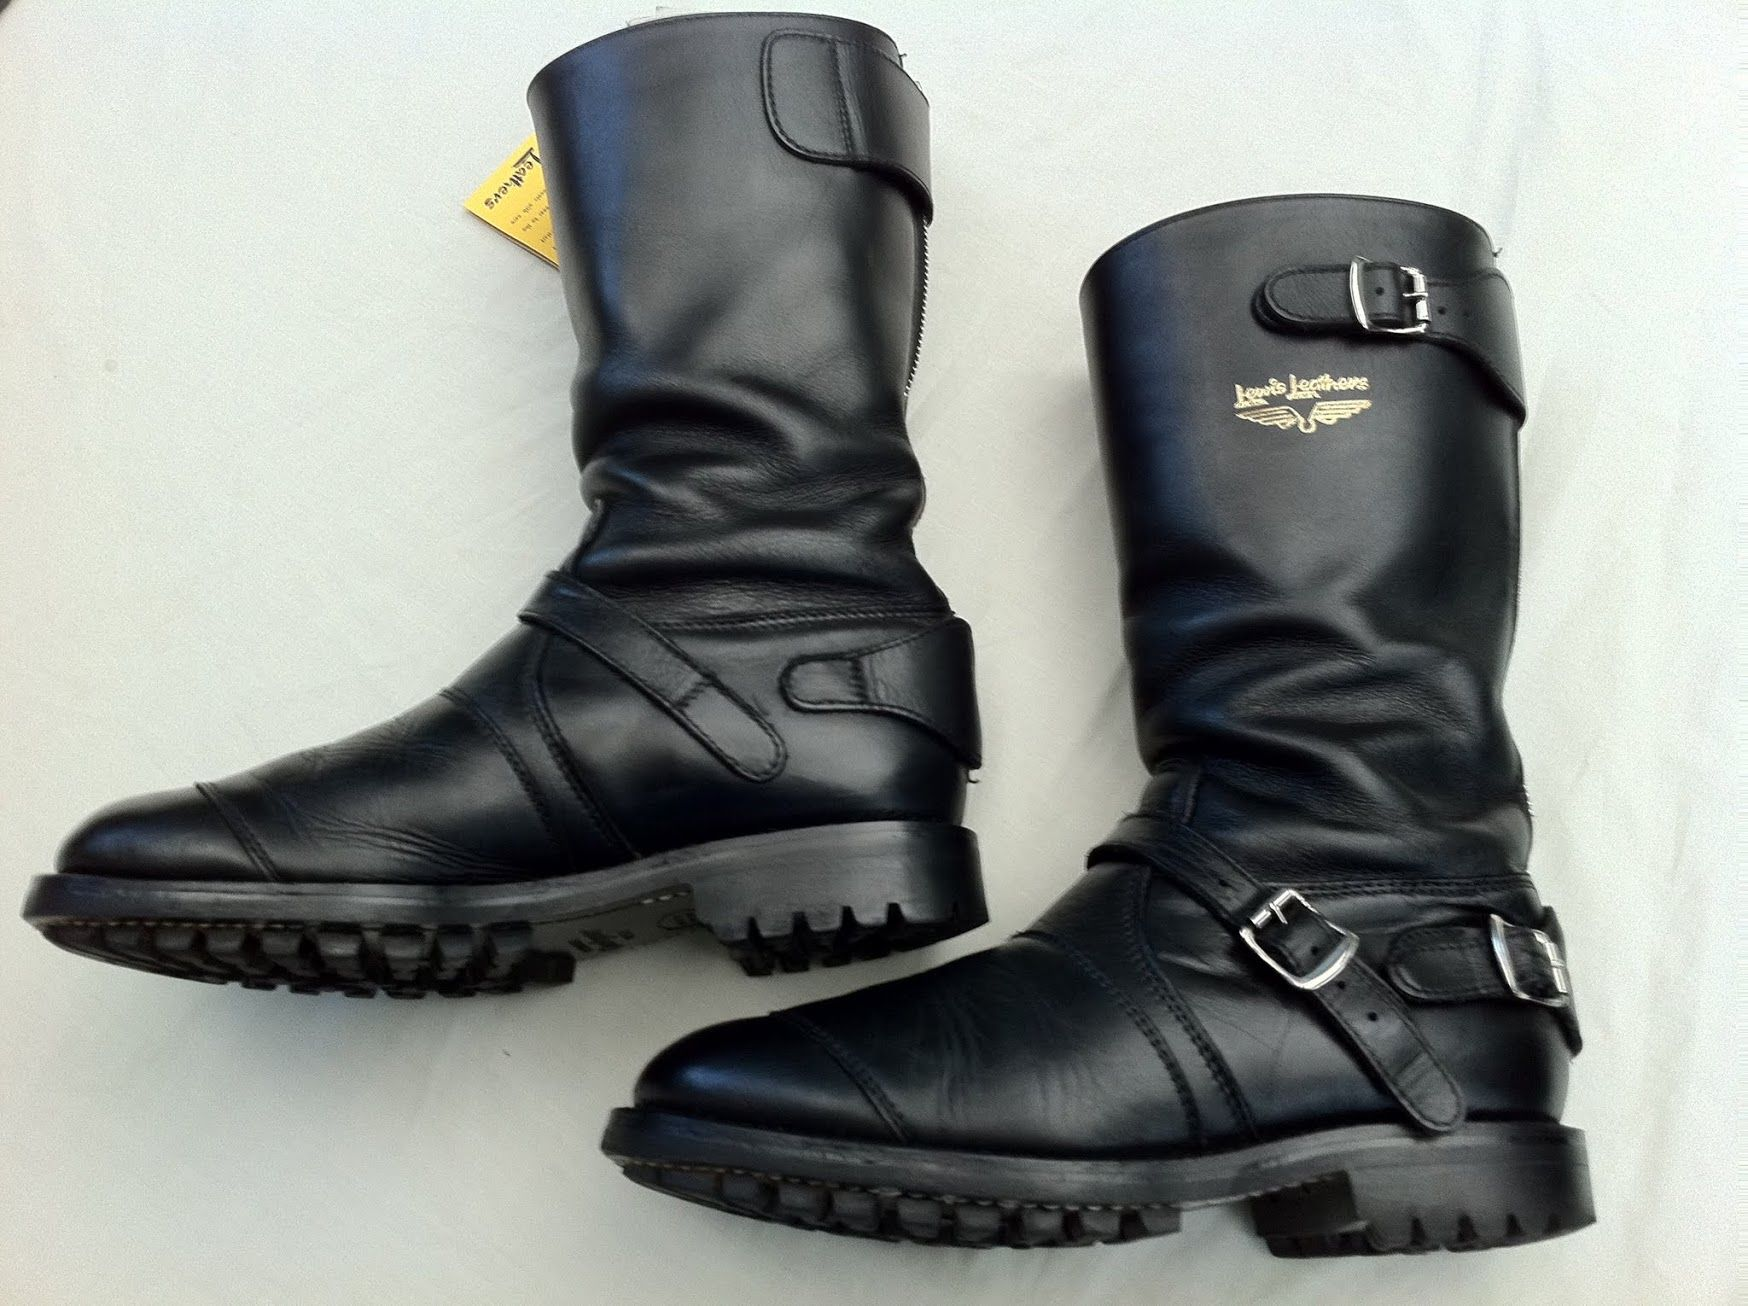 Lewis Leather Boots